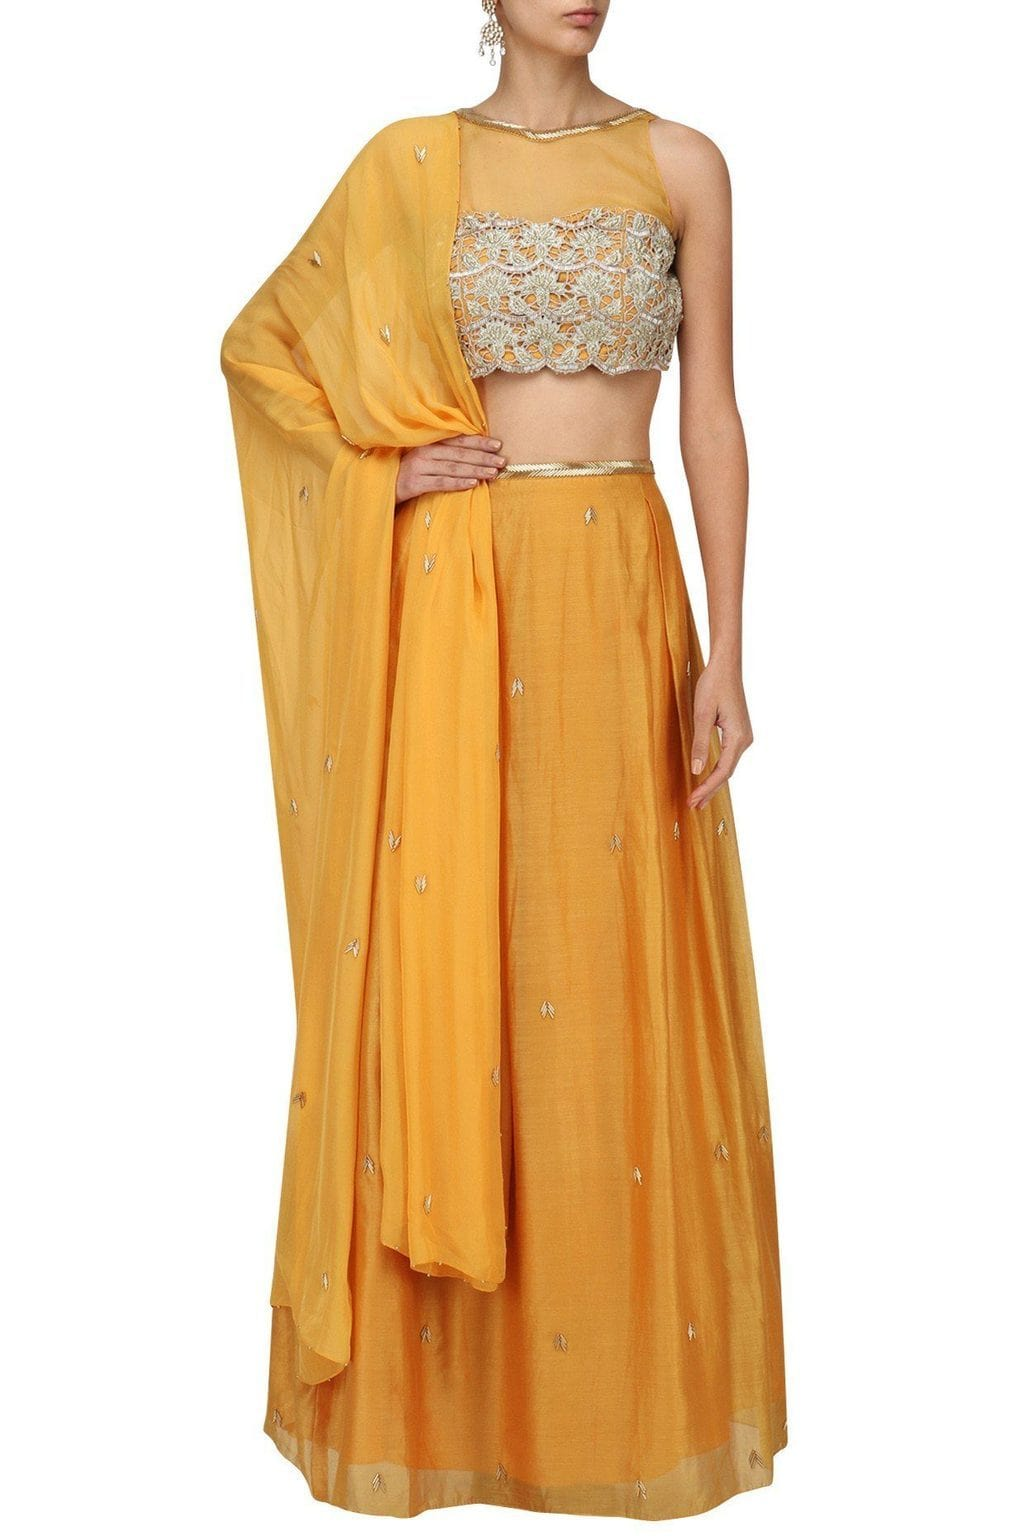 Mustard Yellow Cutwork Embroidery Lehenga SFB5134